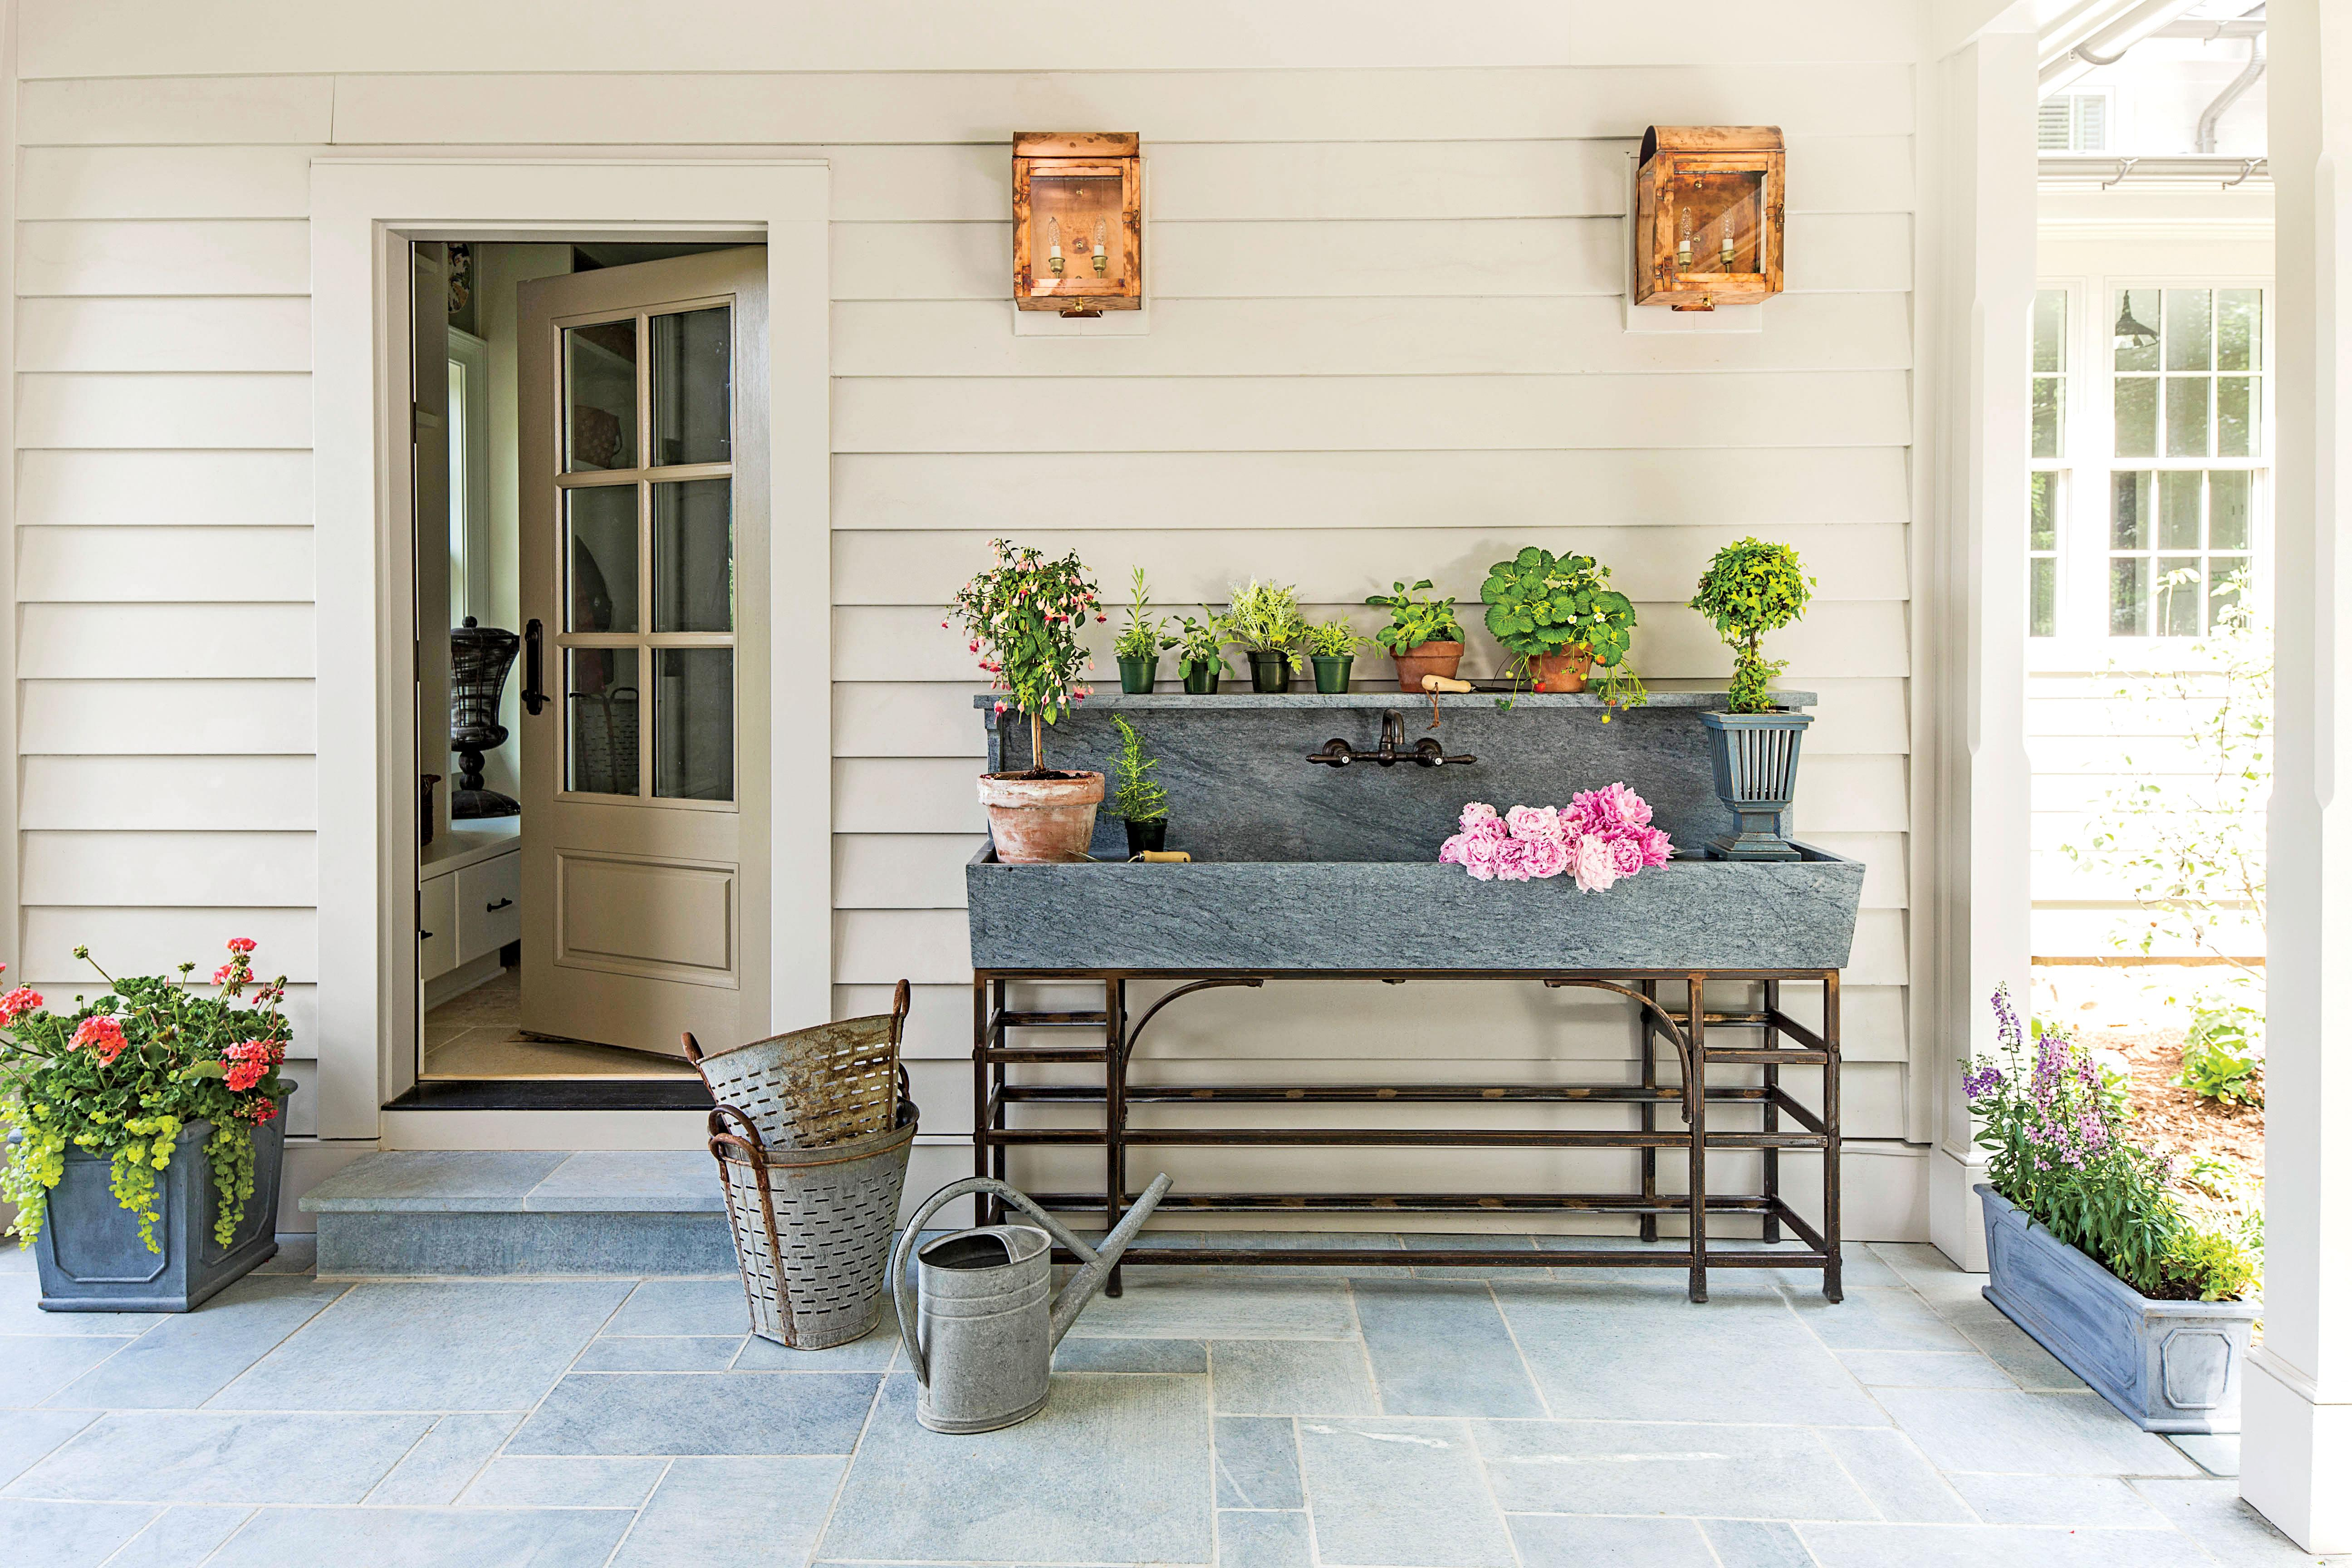 <p>Think outside the box. This small patio is used as a beautiful utility space thanks to a stunning galvanized sink.</p>